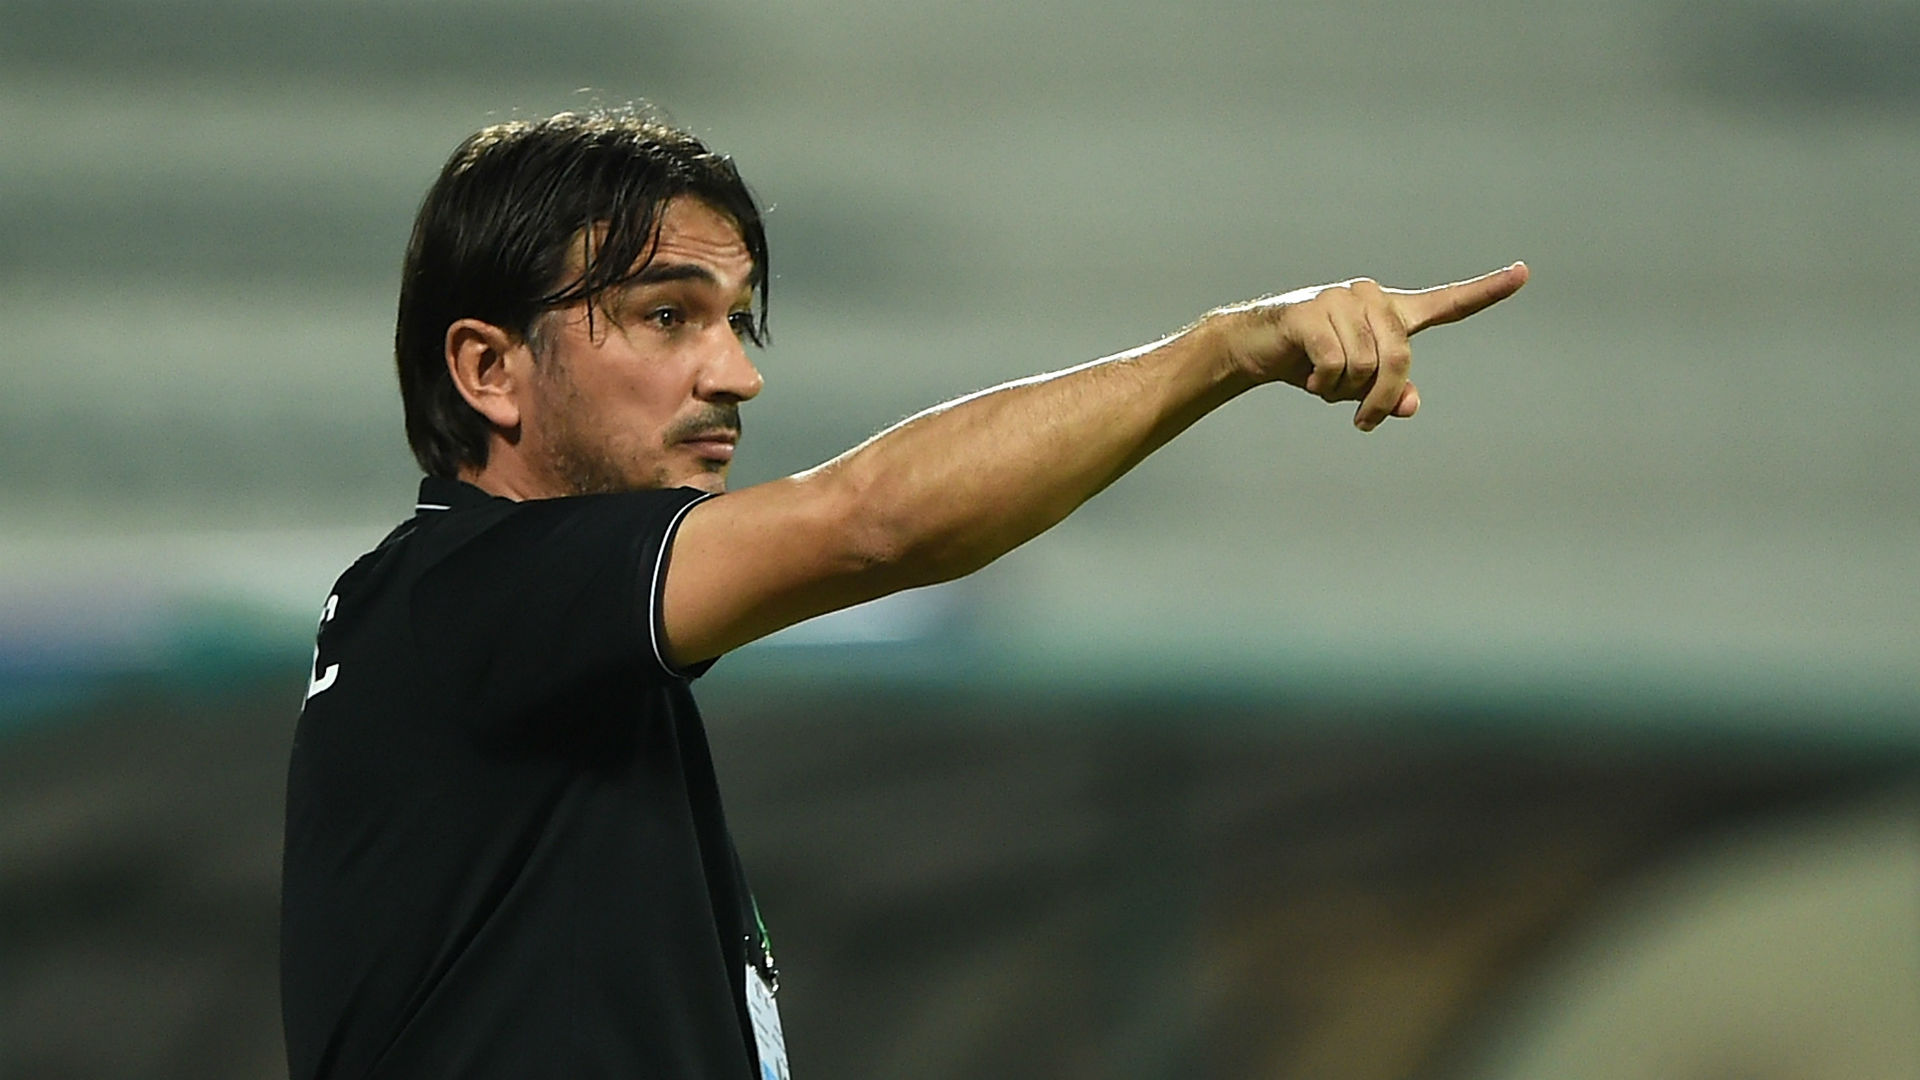 Zlatko Dalić replaces Čačić ahead of Croatia crunch match